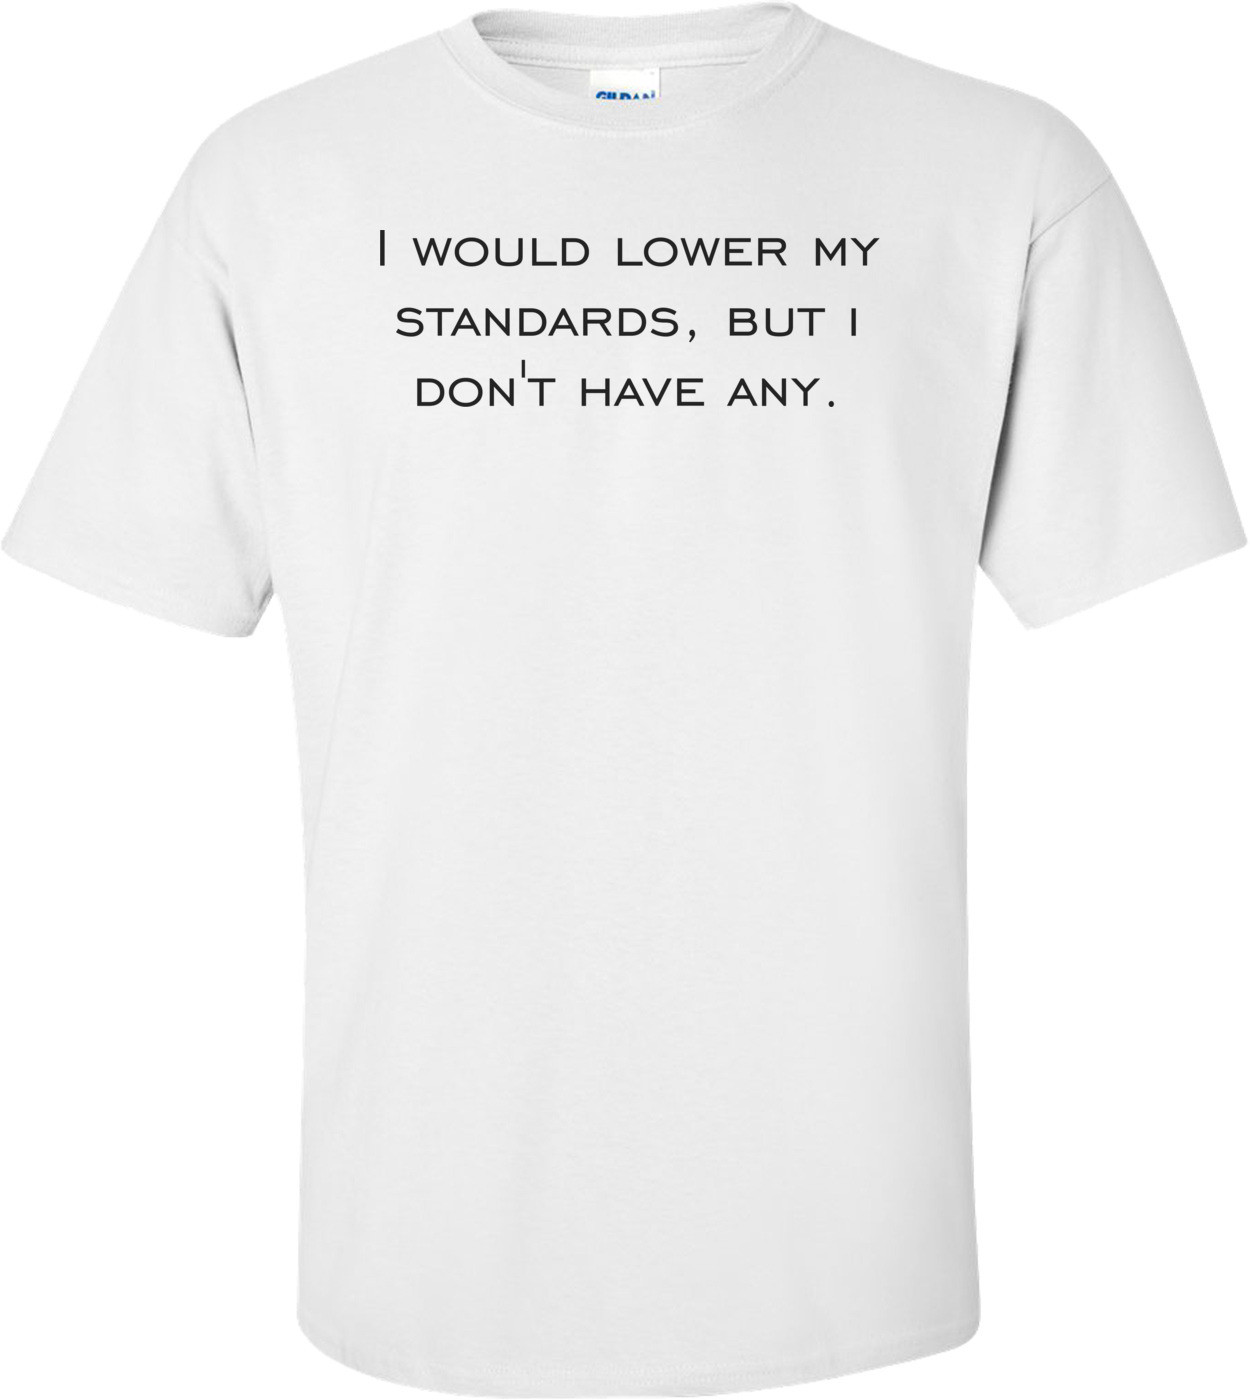 I would lower my standards, but i don't have any. Shirt